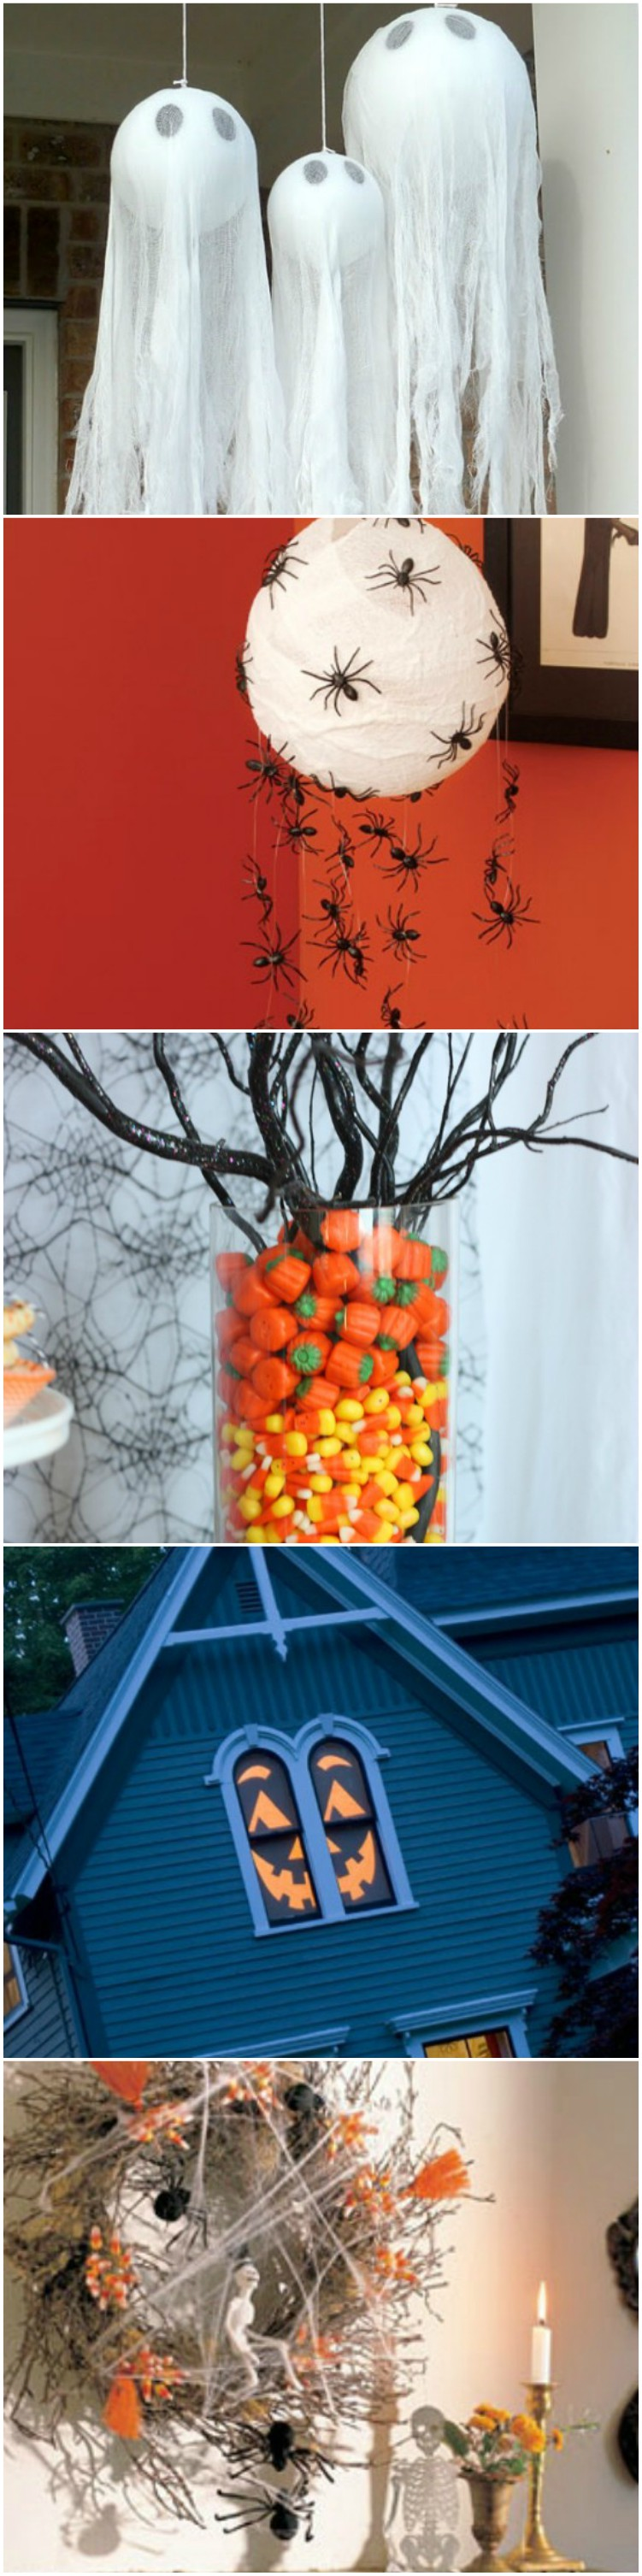 10-easy-to-make-diy-halloween-decor-ideas